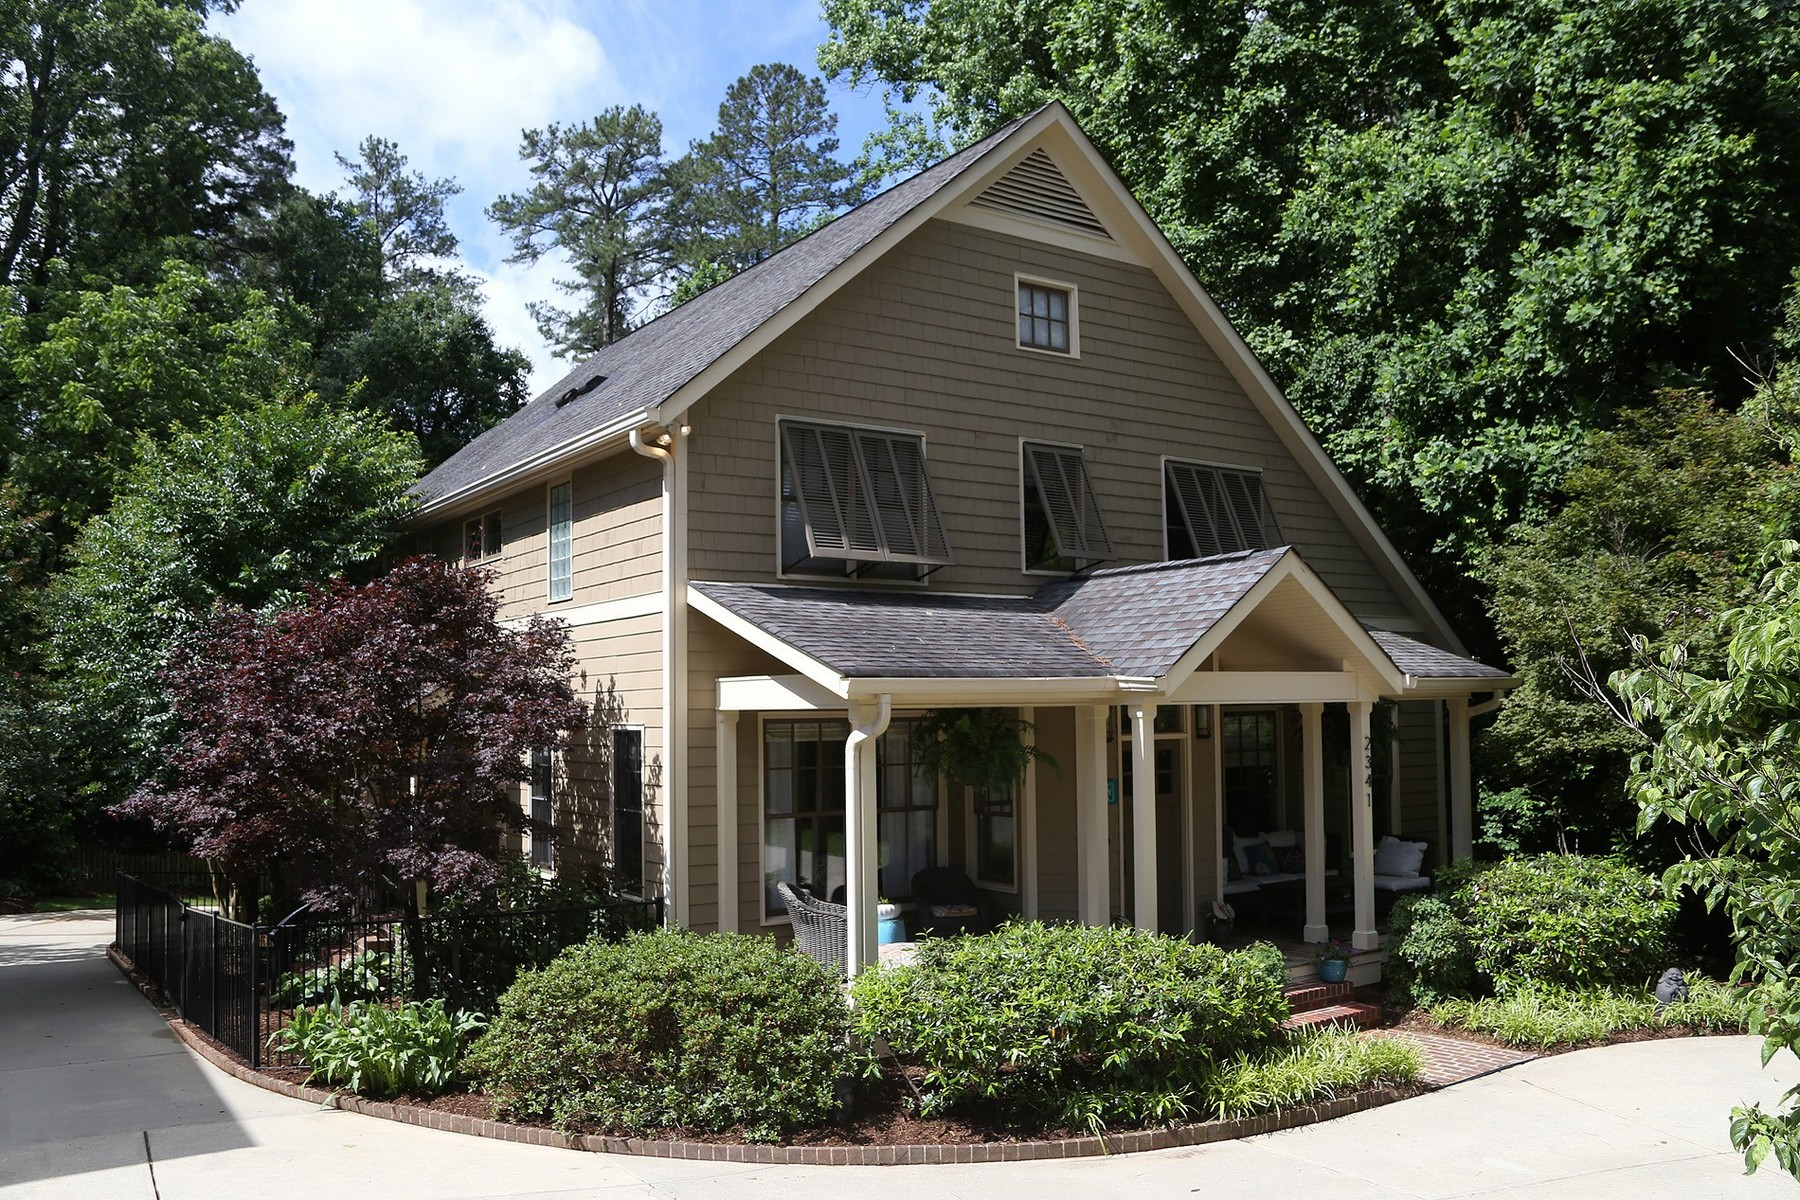 Single Family Home for Sale at Charming Craftsman Style Home In Ideal ITB Location 2341 Lyon Street Raleigh, North Carolina 27608 United StatesIn/Around: Cary, Chapel Hill, Durham